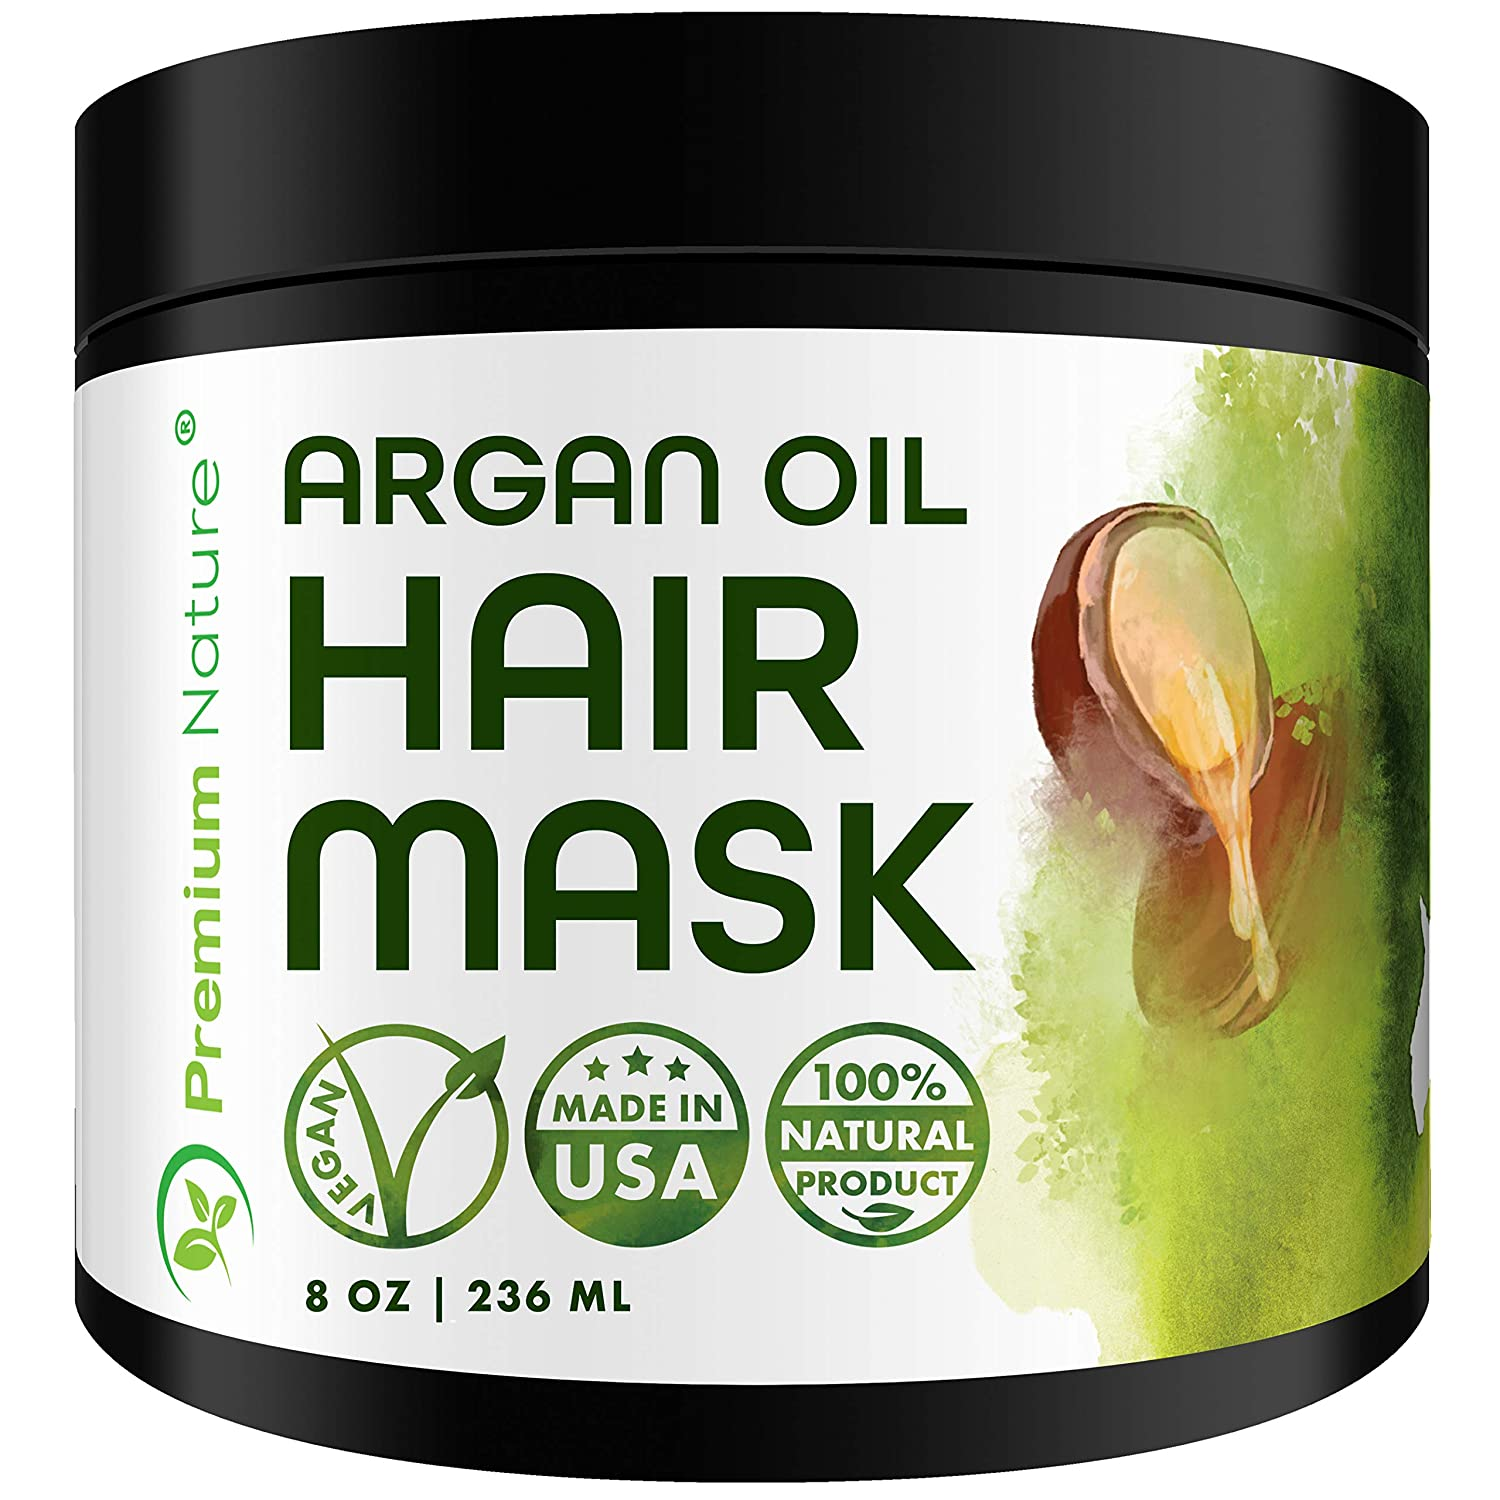 Argan Oil Hair Mask Deep Conditioner - Sulfate Free Conditioning Hair Treatment for Damaged & Dry Hair Repair & Growth All Natural Gentle for Curly & Color Treated Hair Hydrates 1 pack